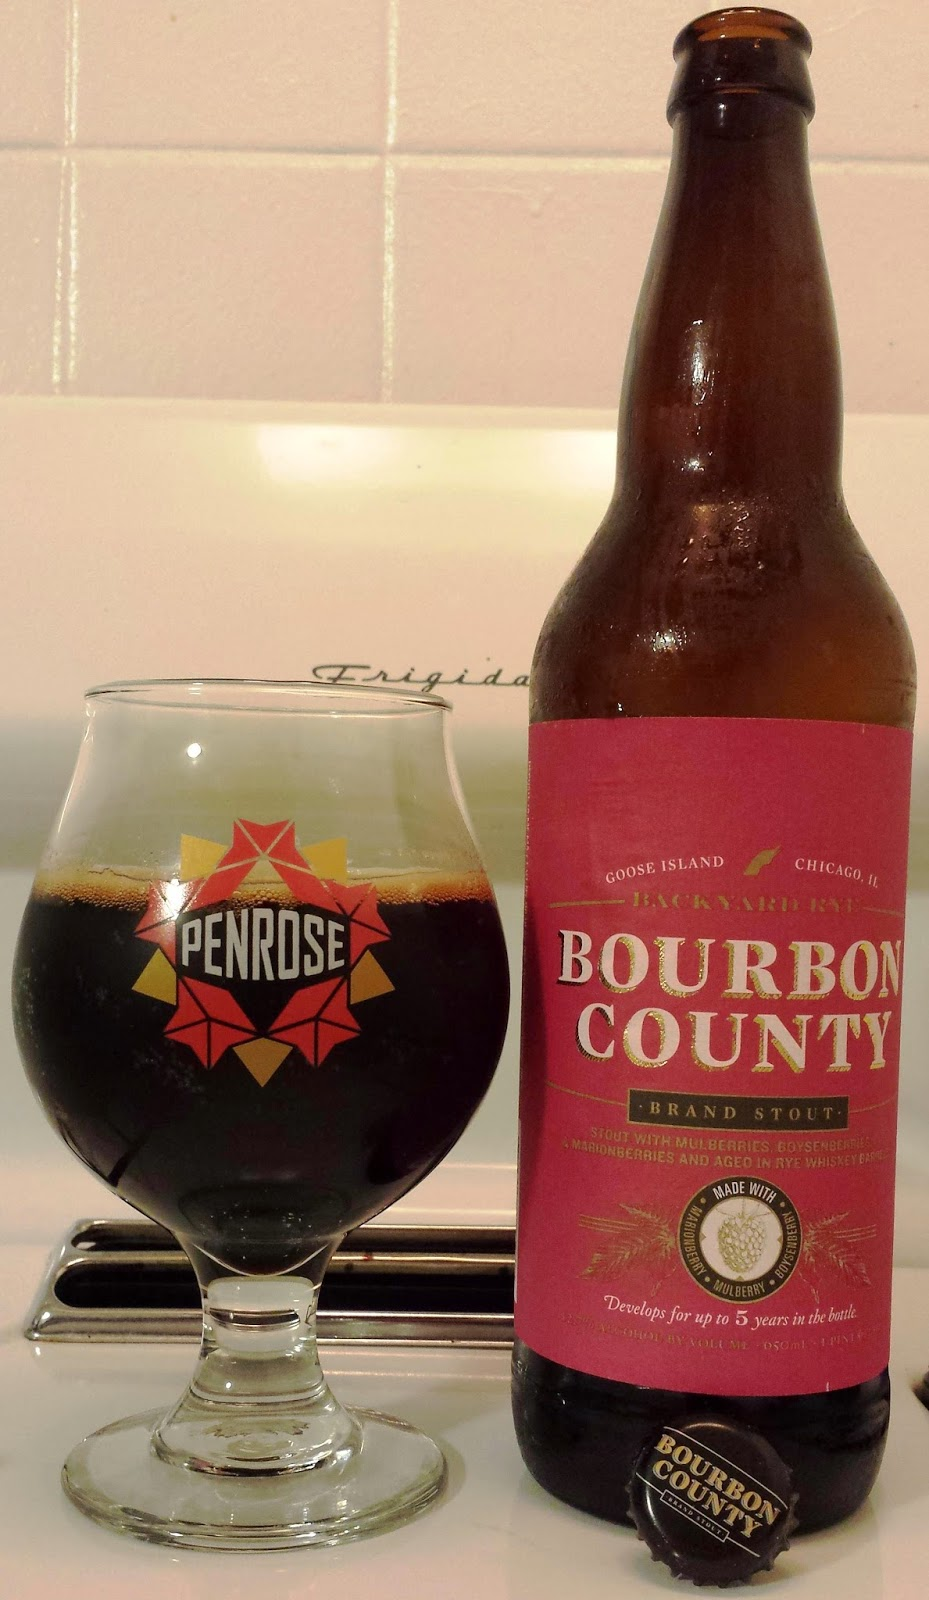 Bourbon County Backyard Rye not another beer review: goose island backyard rye bourbon county